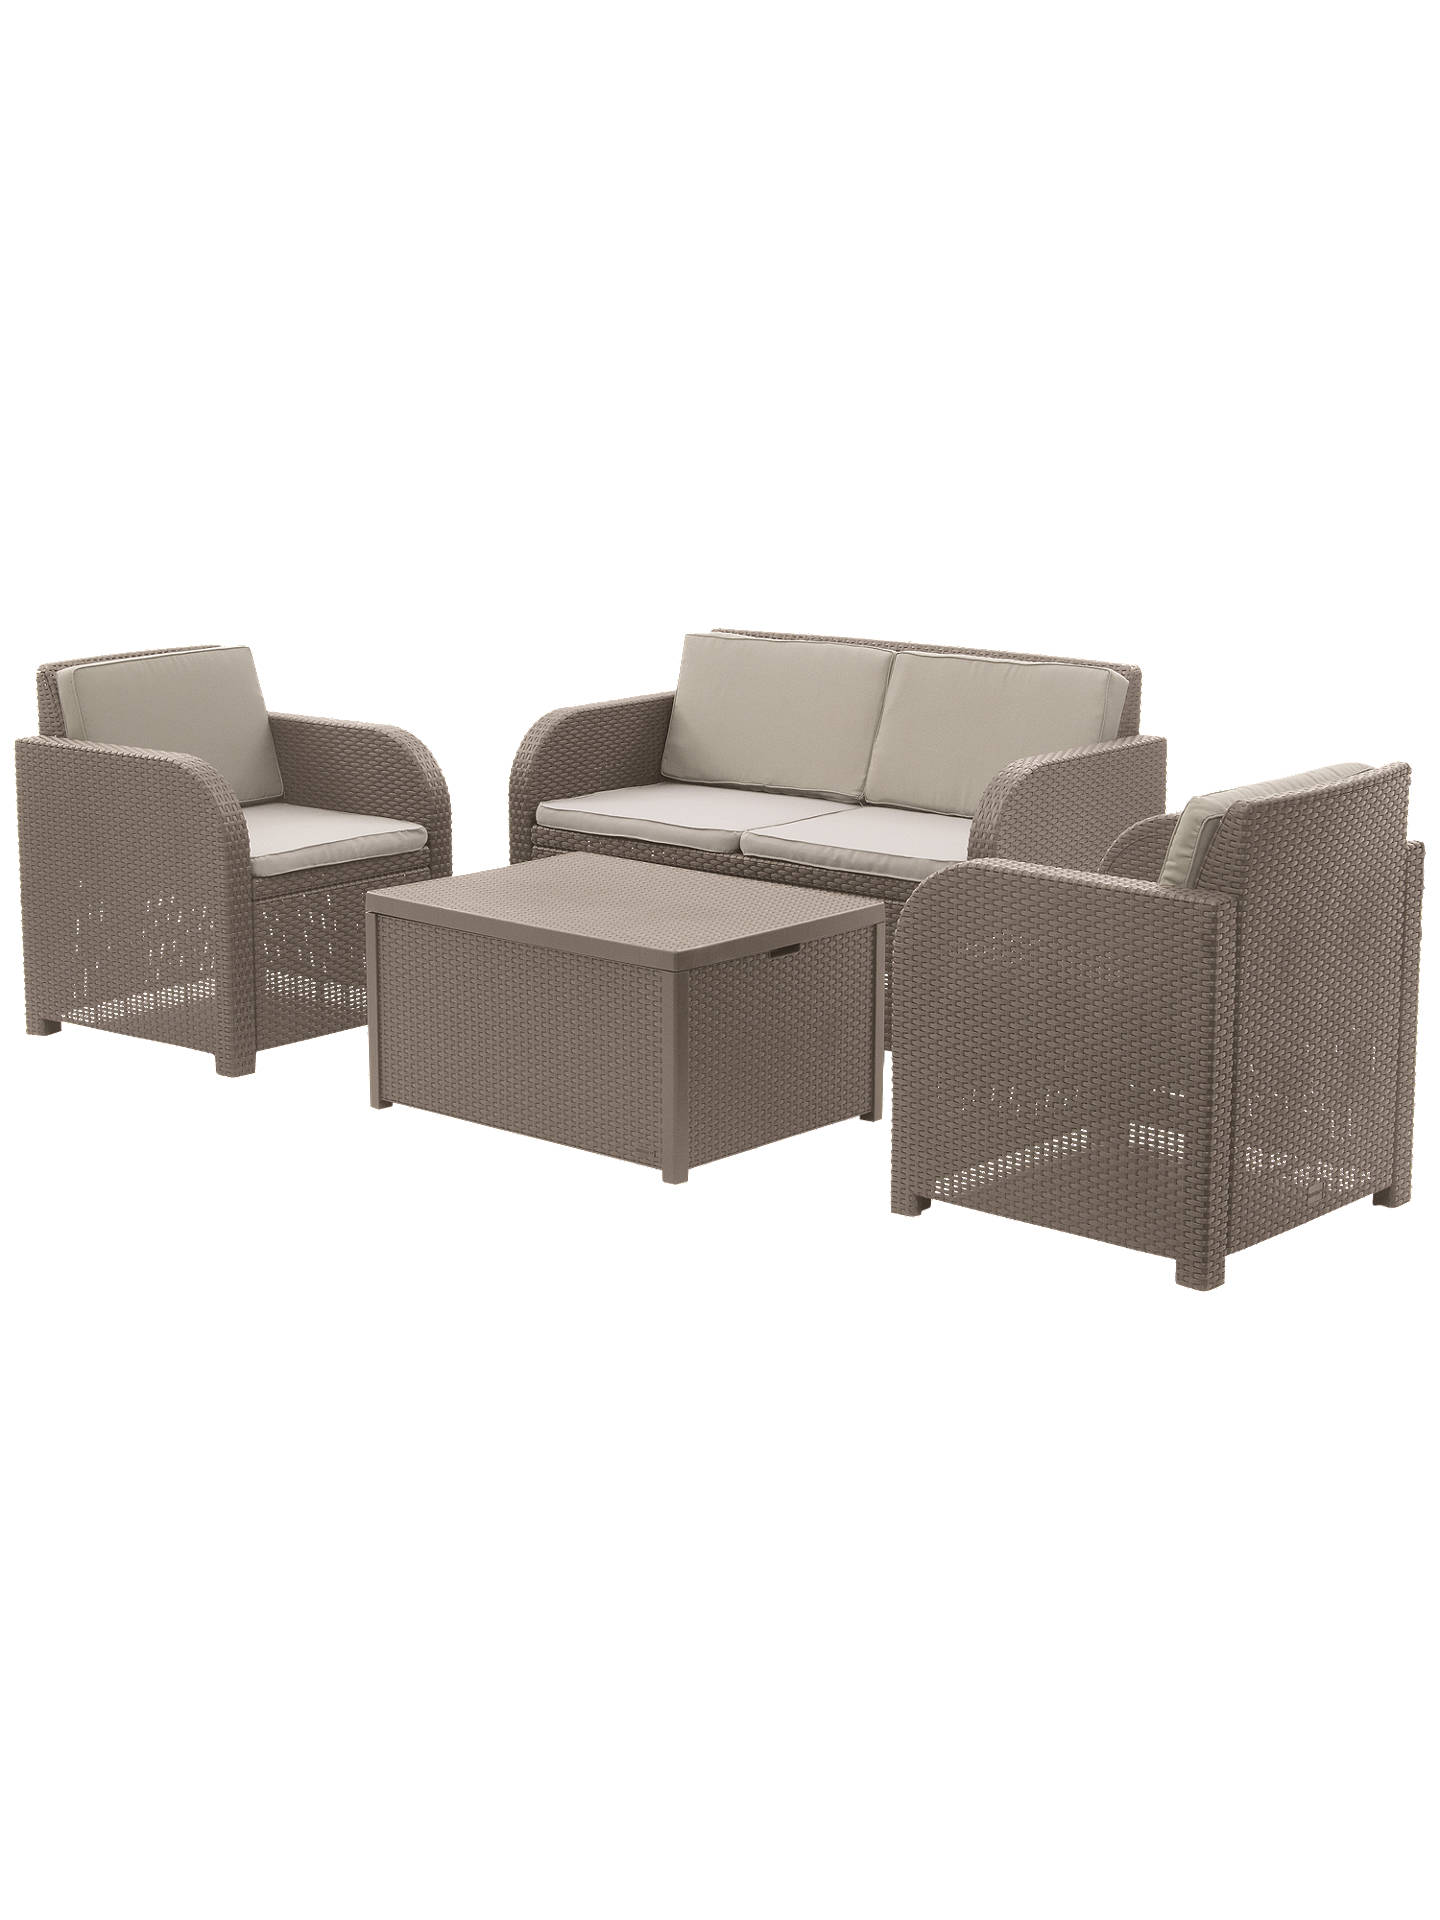 BuyJohn Lewis & Partners Oasis 4 Seater Garden Lounging Set, Cappuccino Online at johnlewis.com